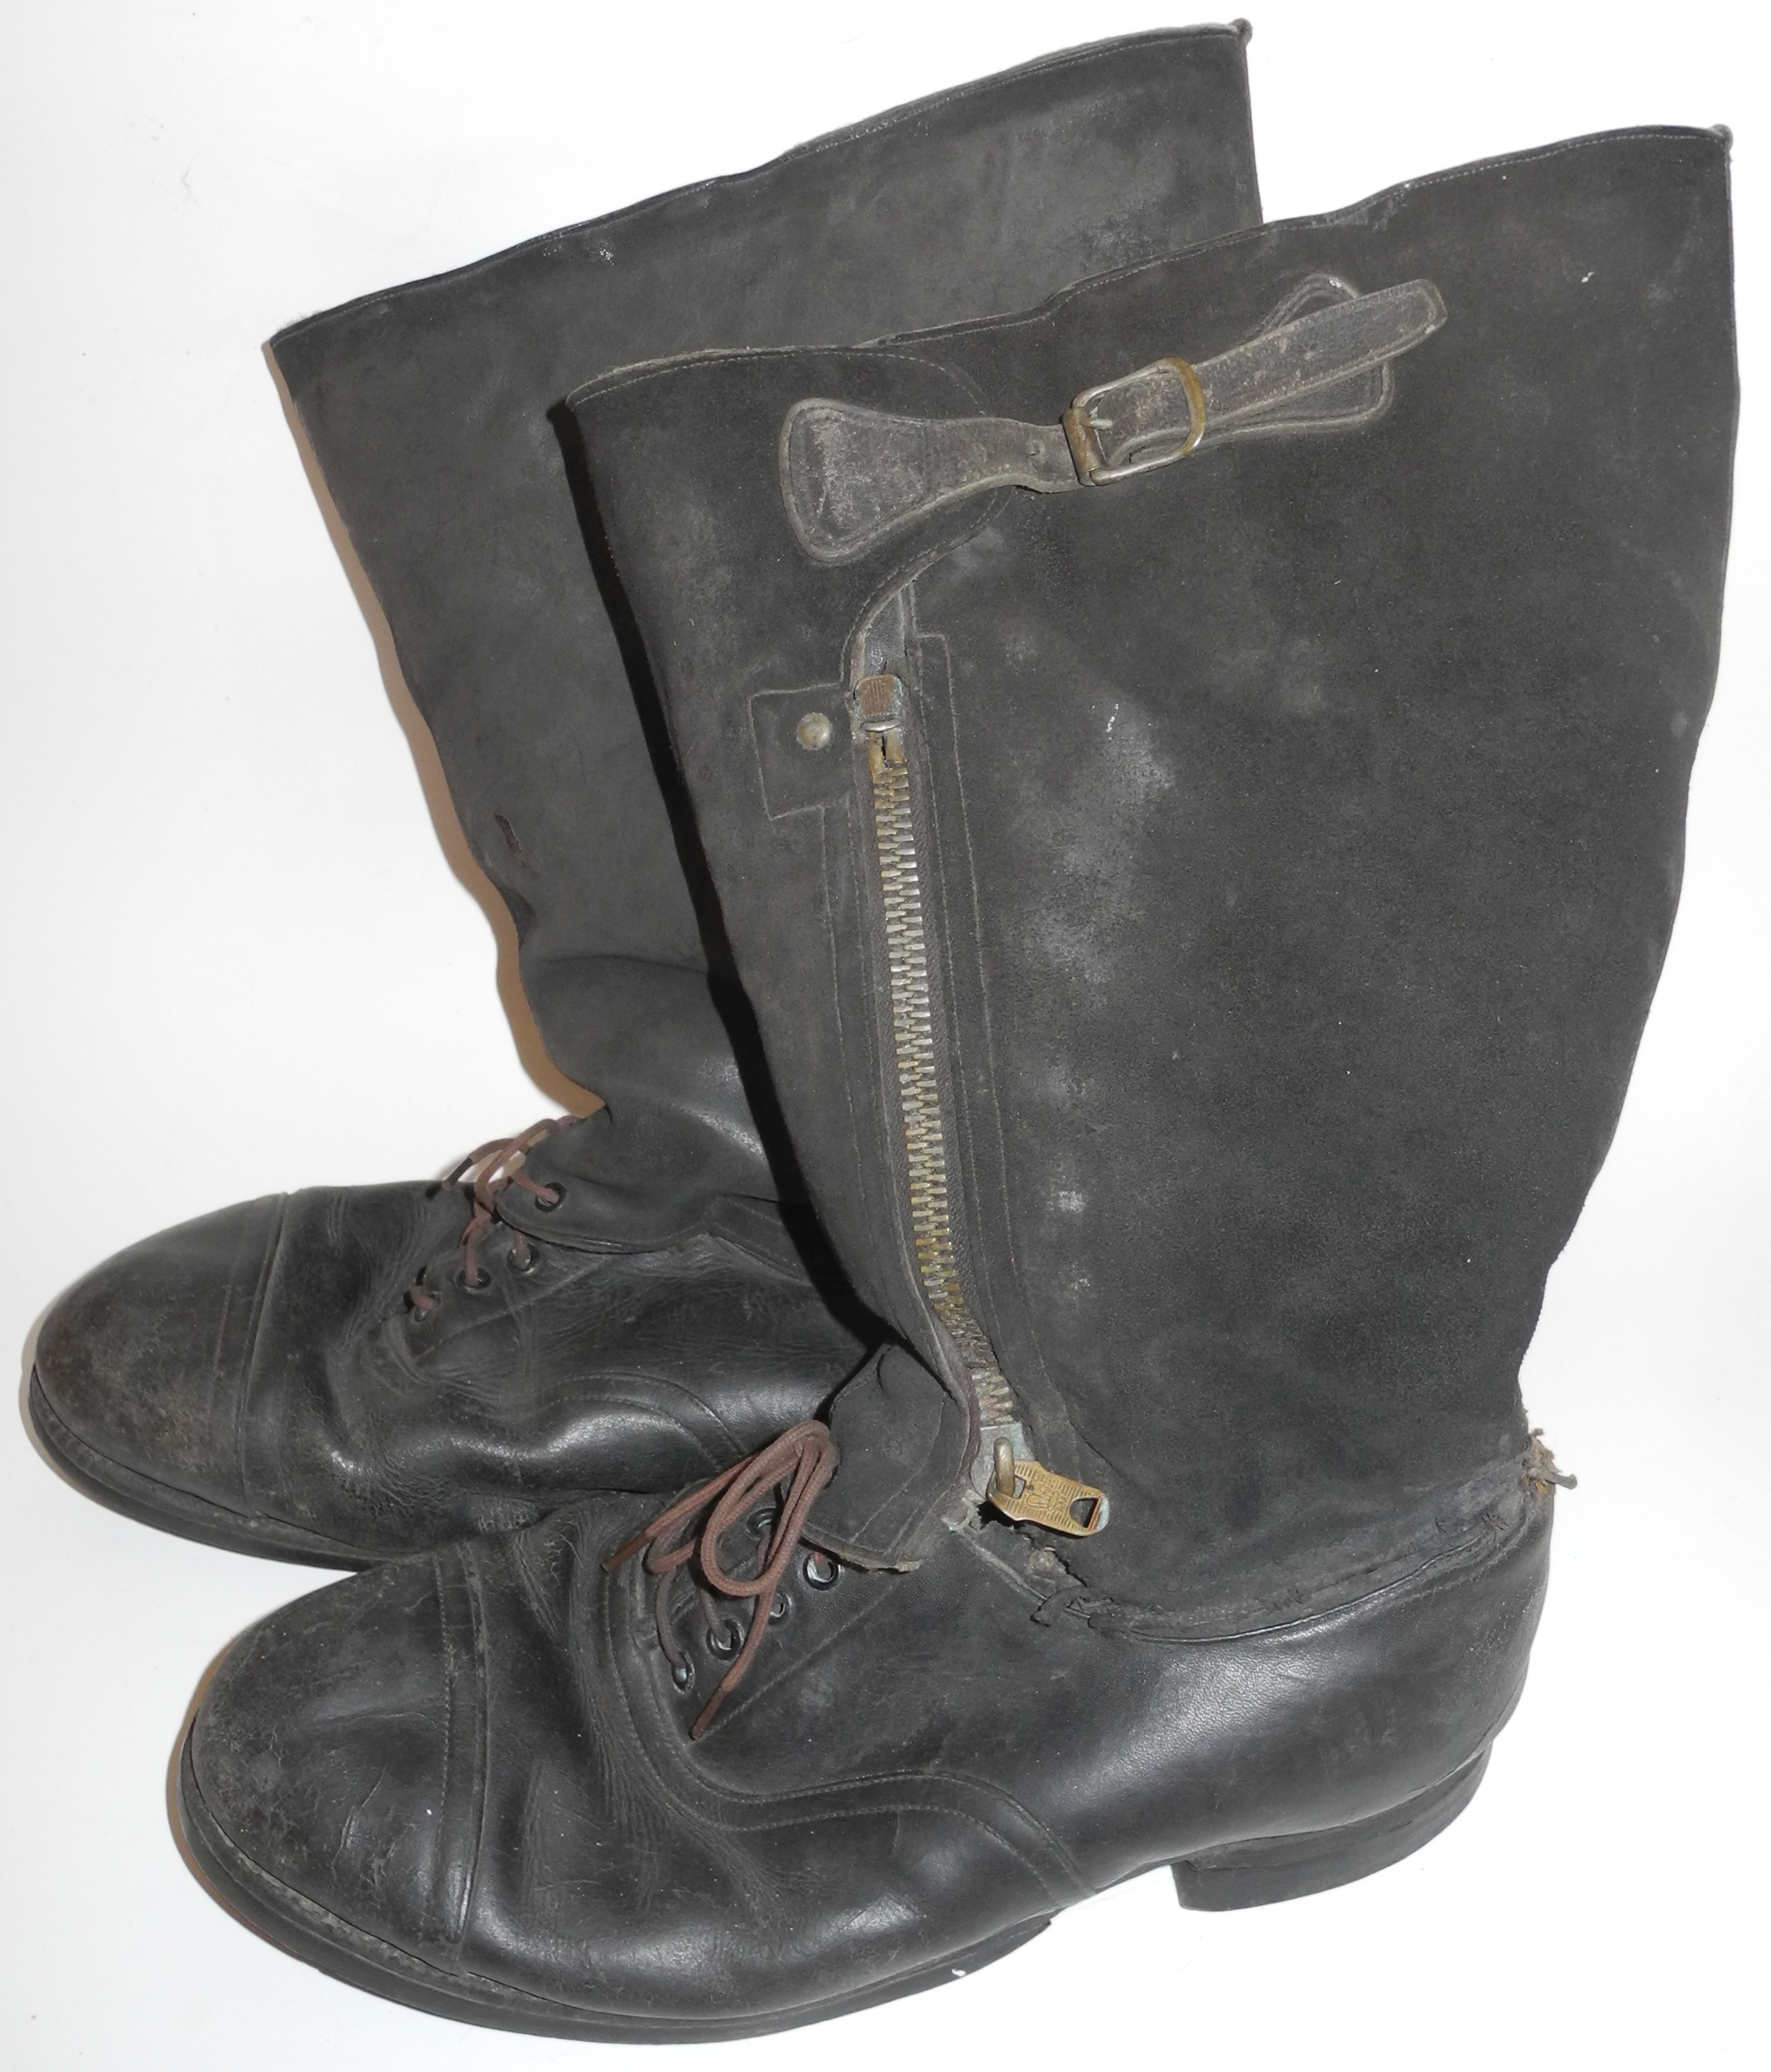 RAF 1943 escape boots with history